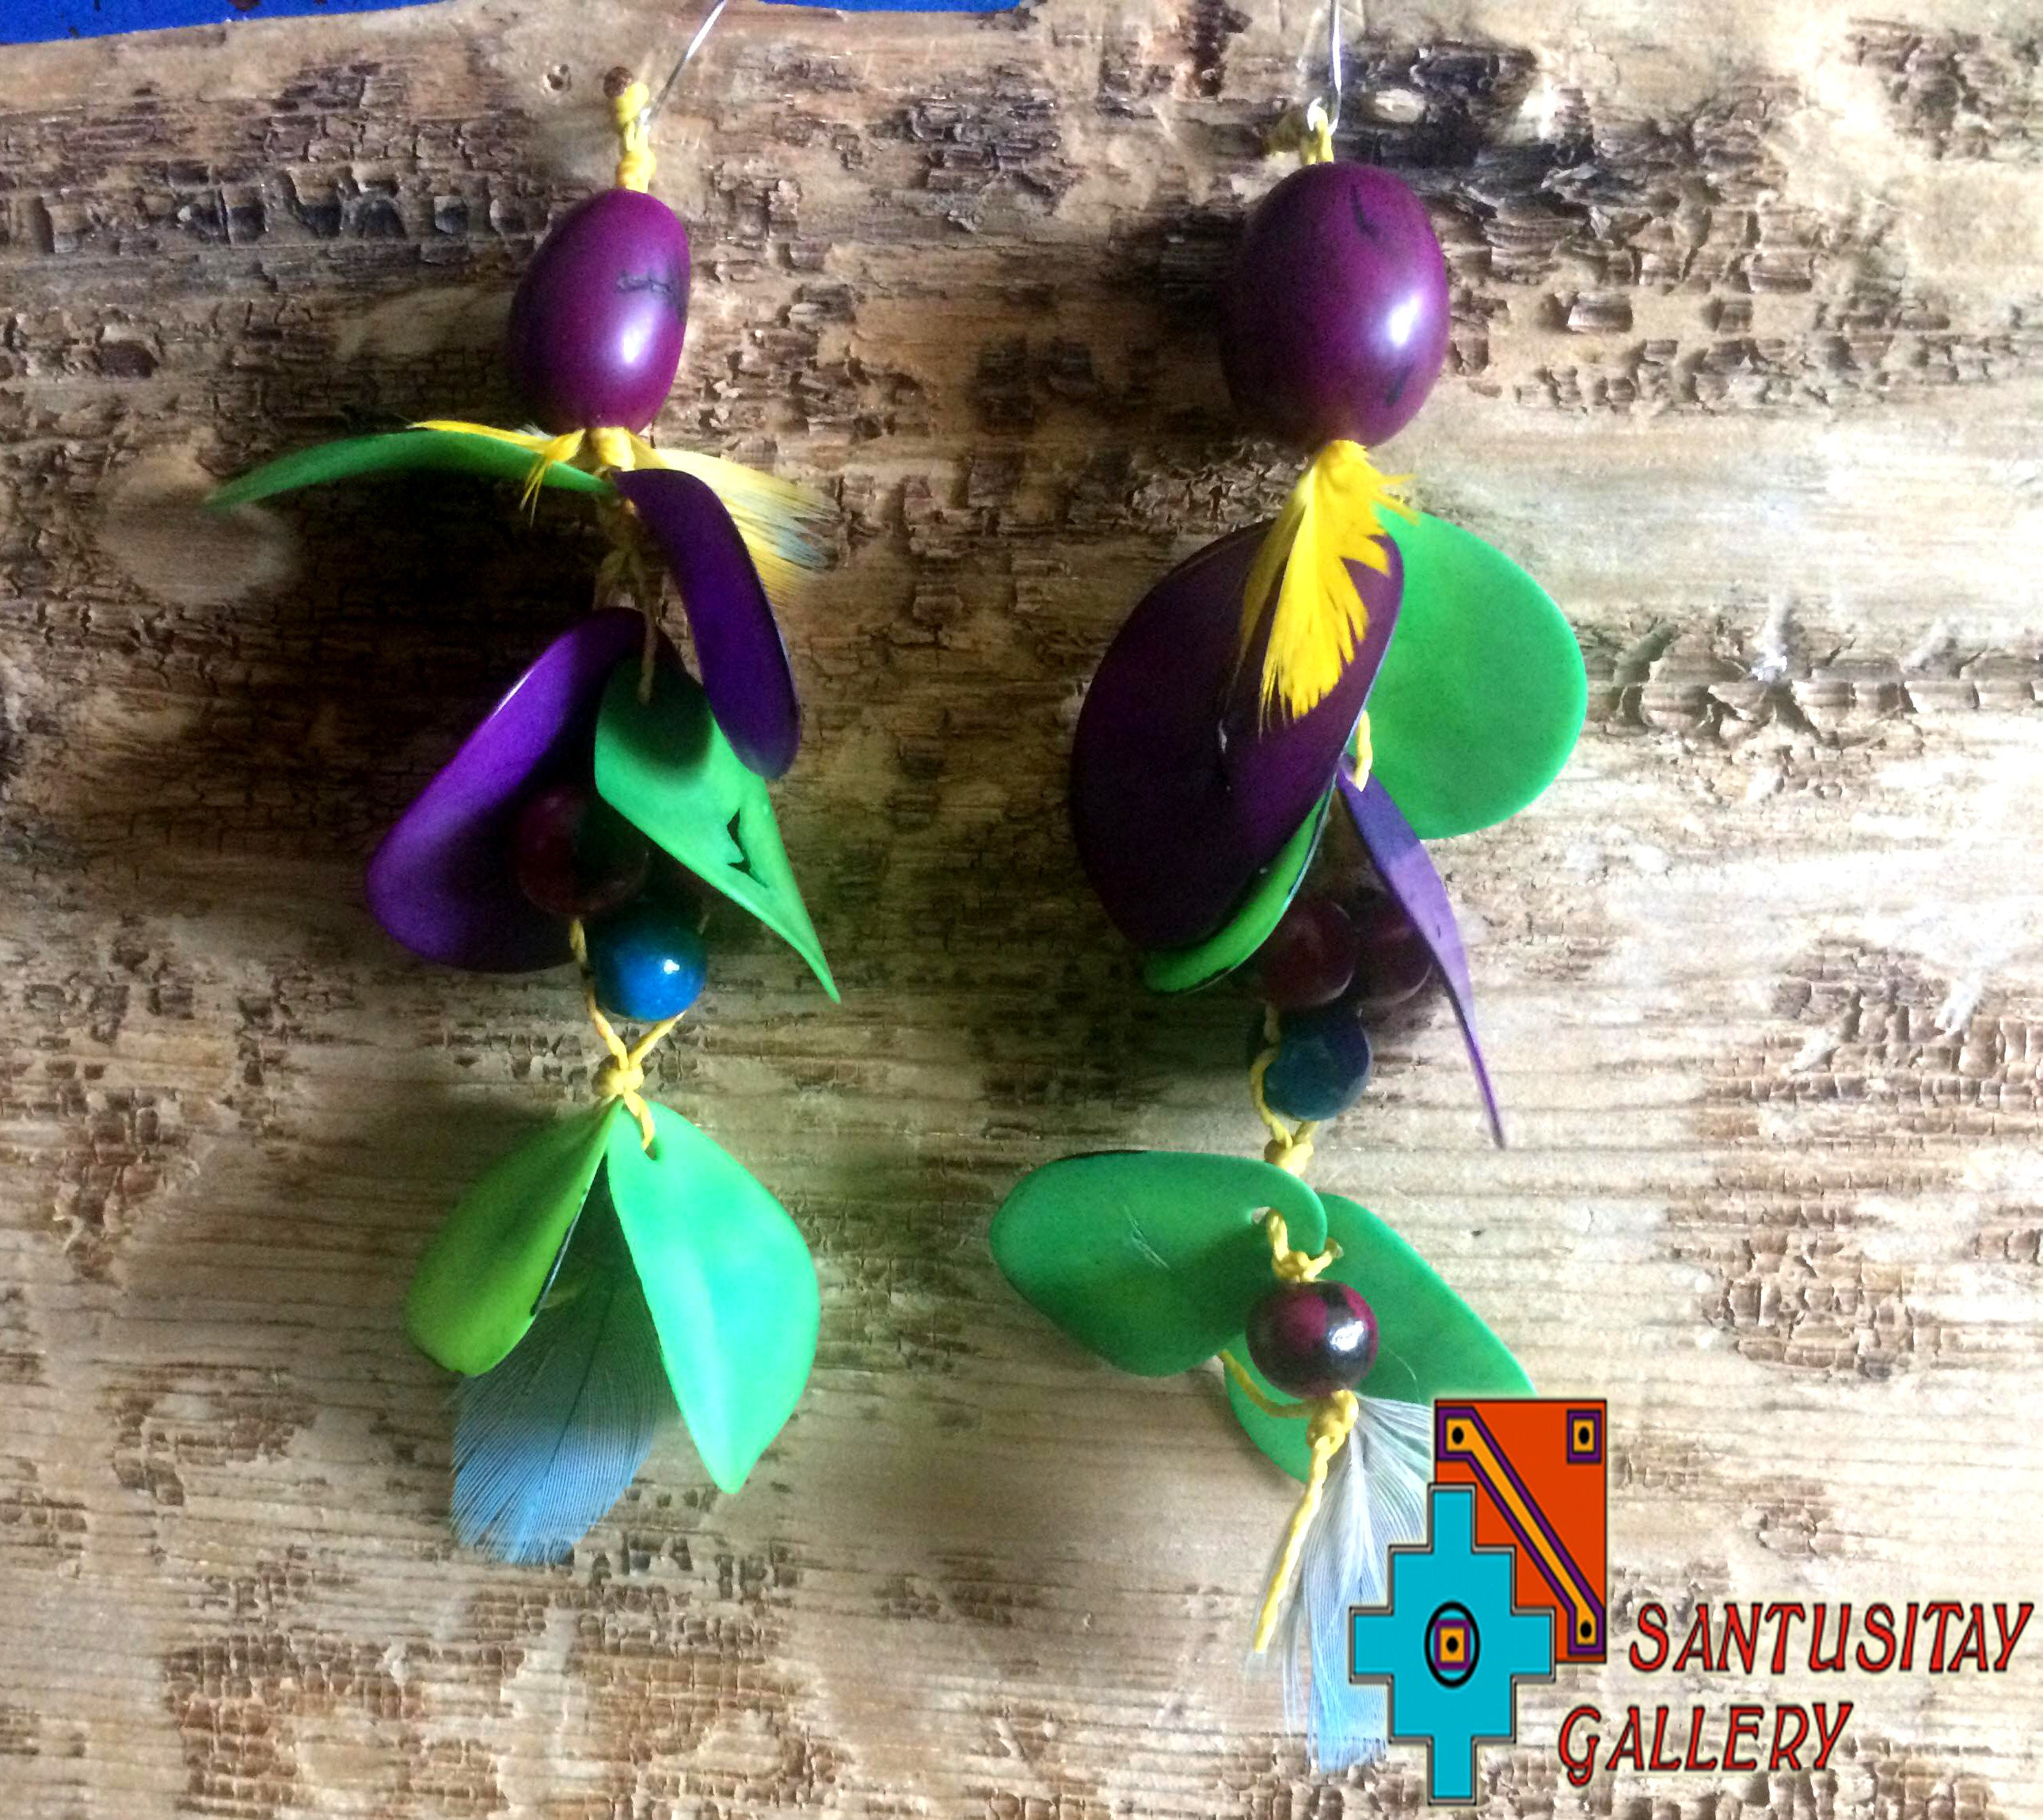 Acai tagua seeds Macau feathers hand crafted earrings hand made purple yellow teal macrame natural jungle forest tribal gift